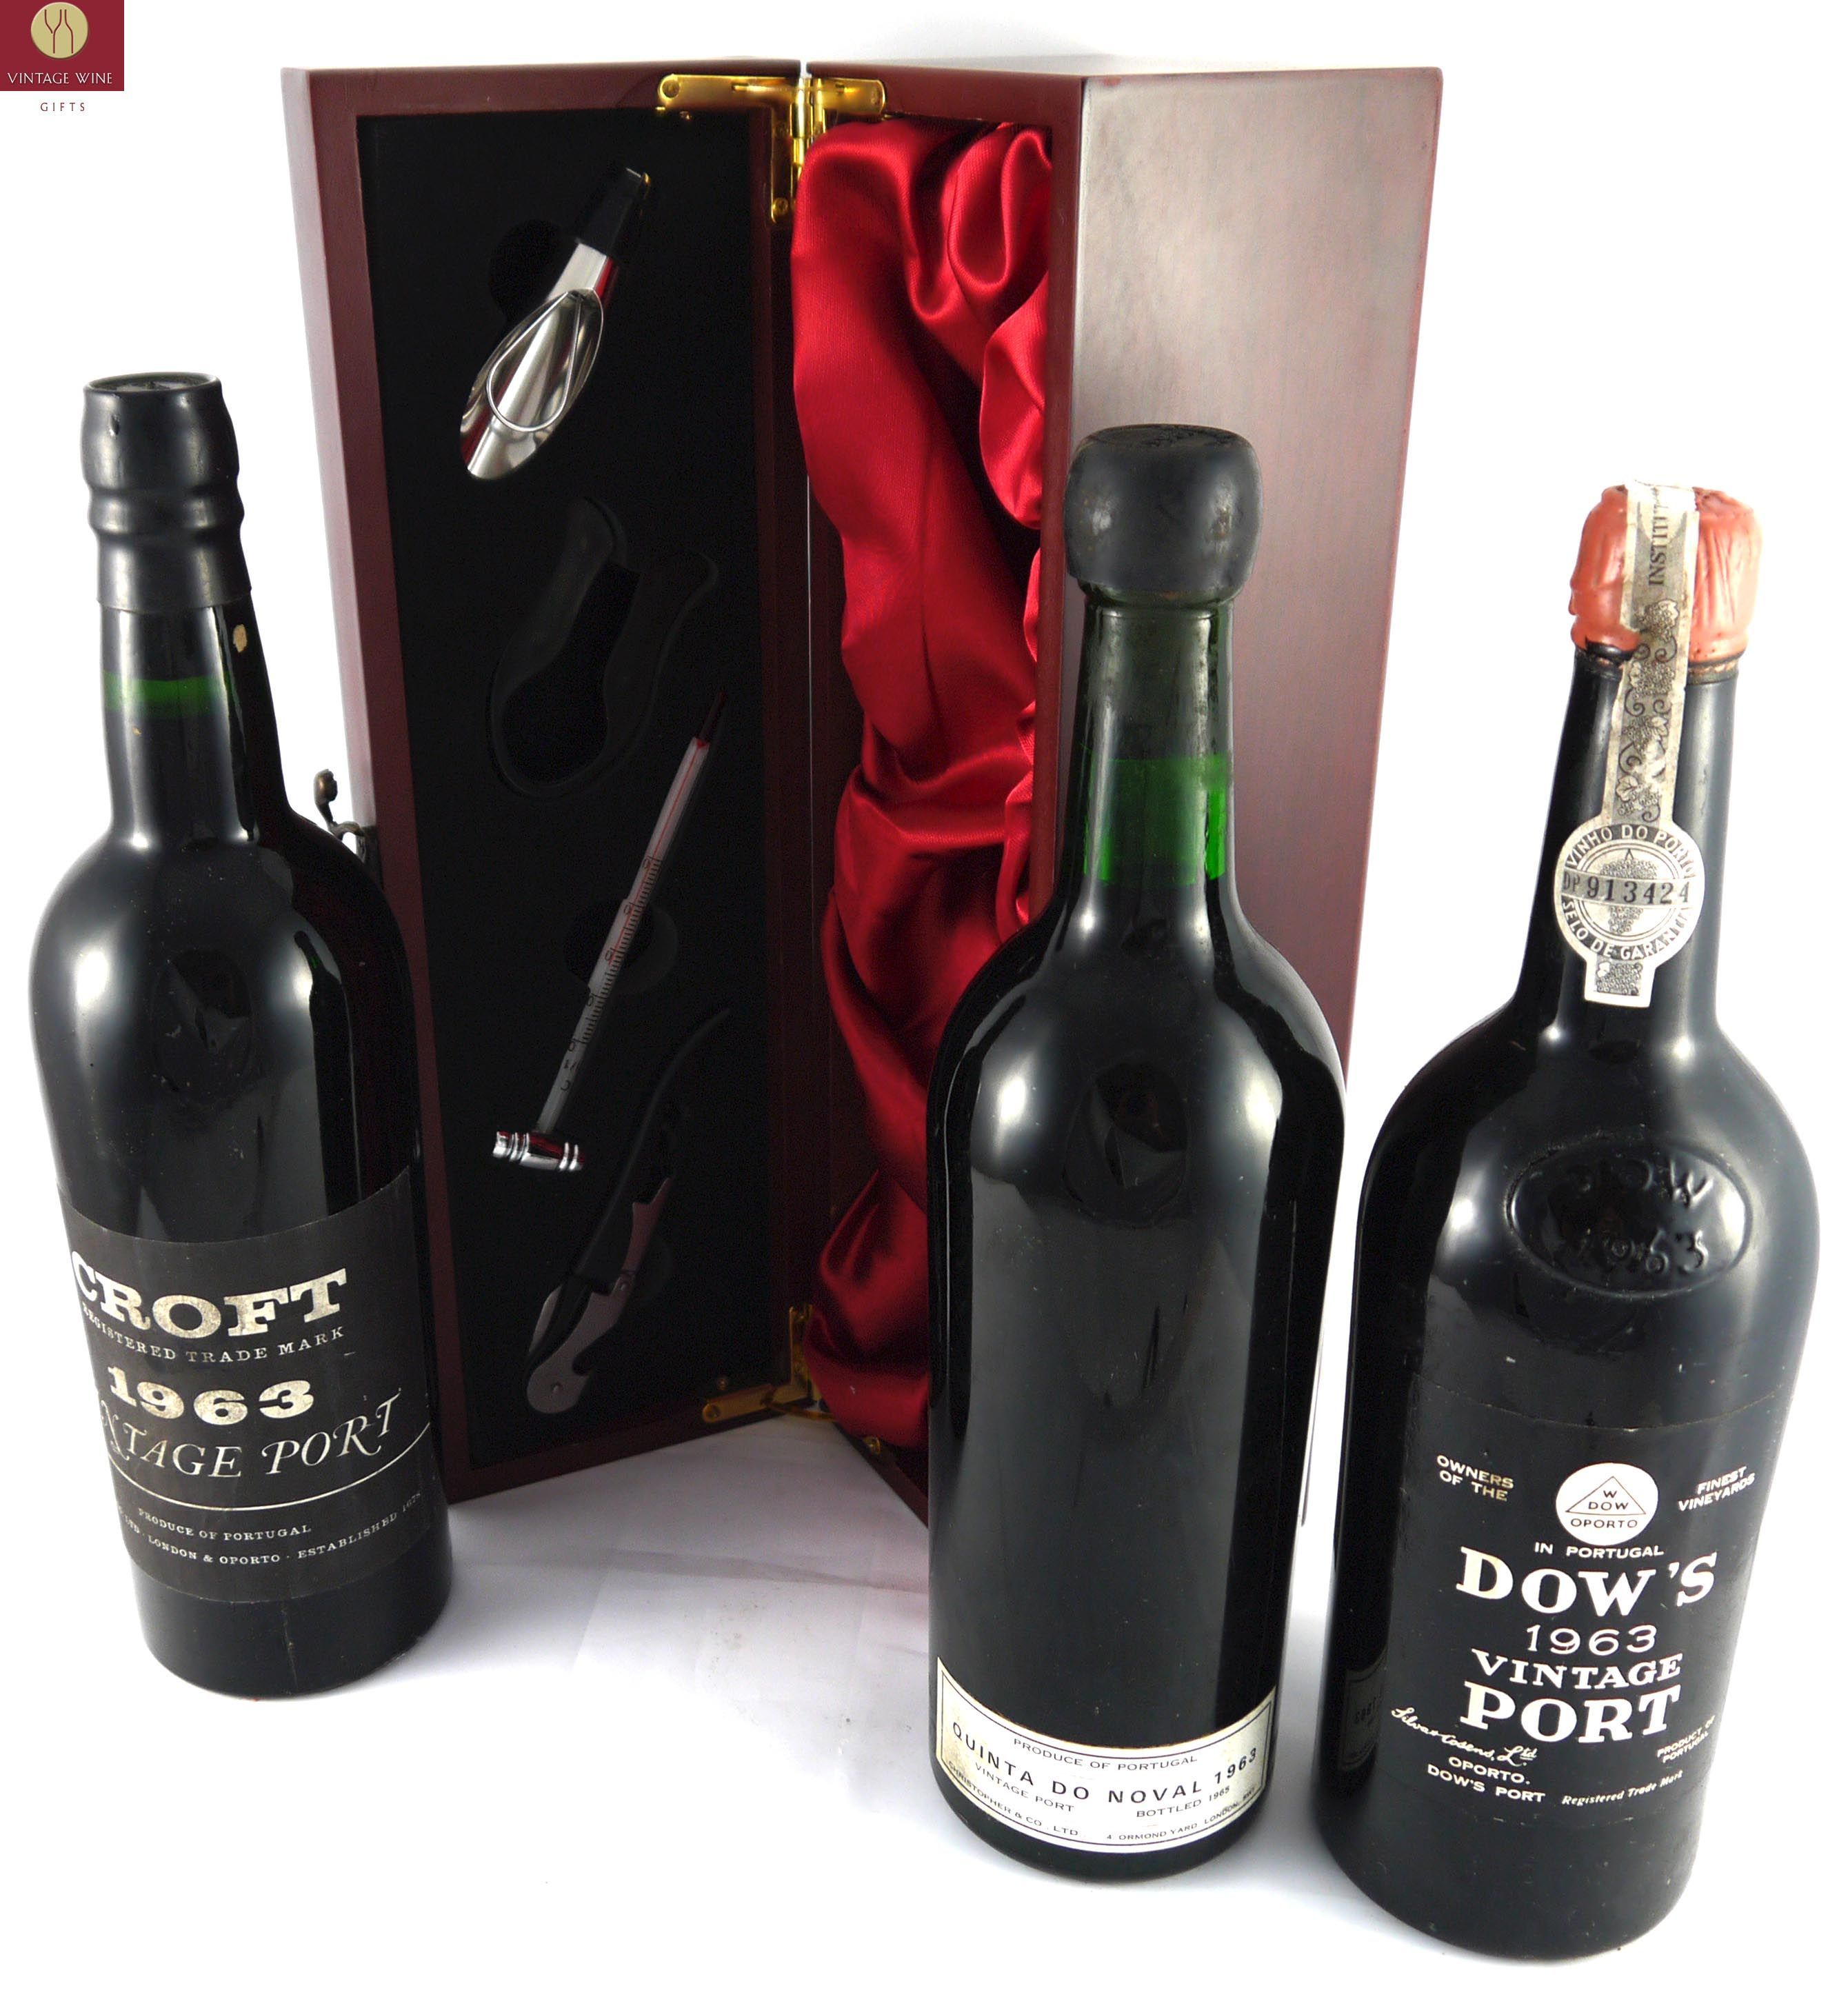 50th Anniversary Or Birthday Vintage Port Gifts From Dow S Croft And Quinta Do Noval 1963 Http Www Vintageport Bottles Decoration Distillation Vintage